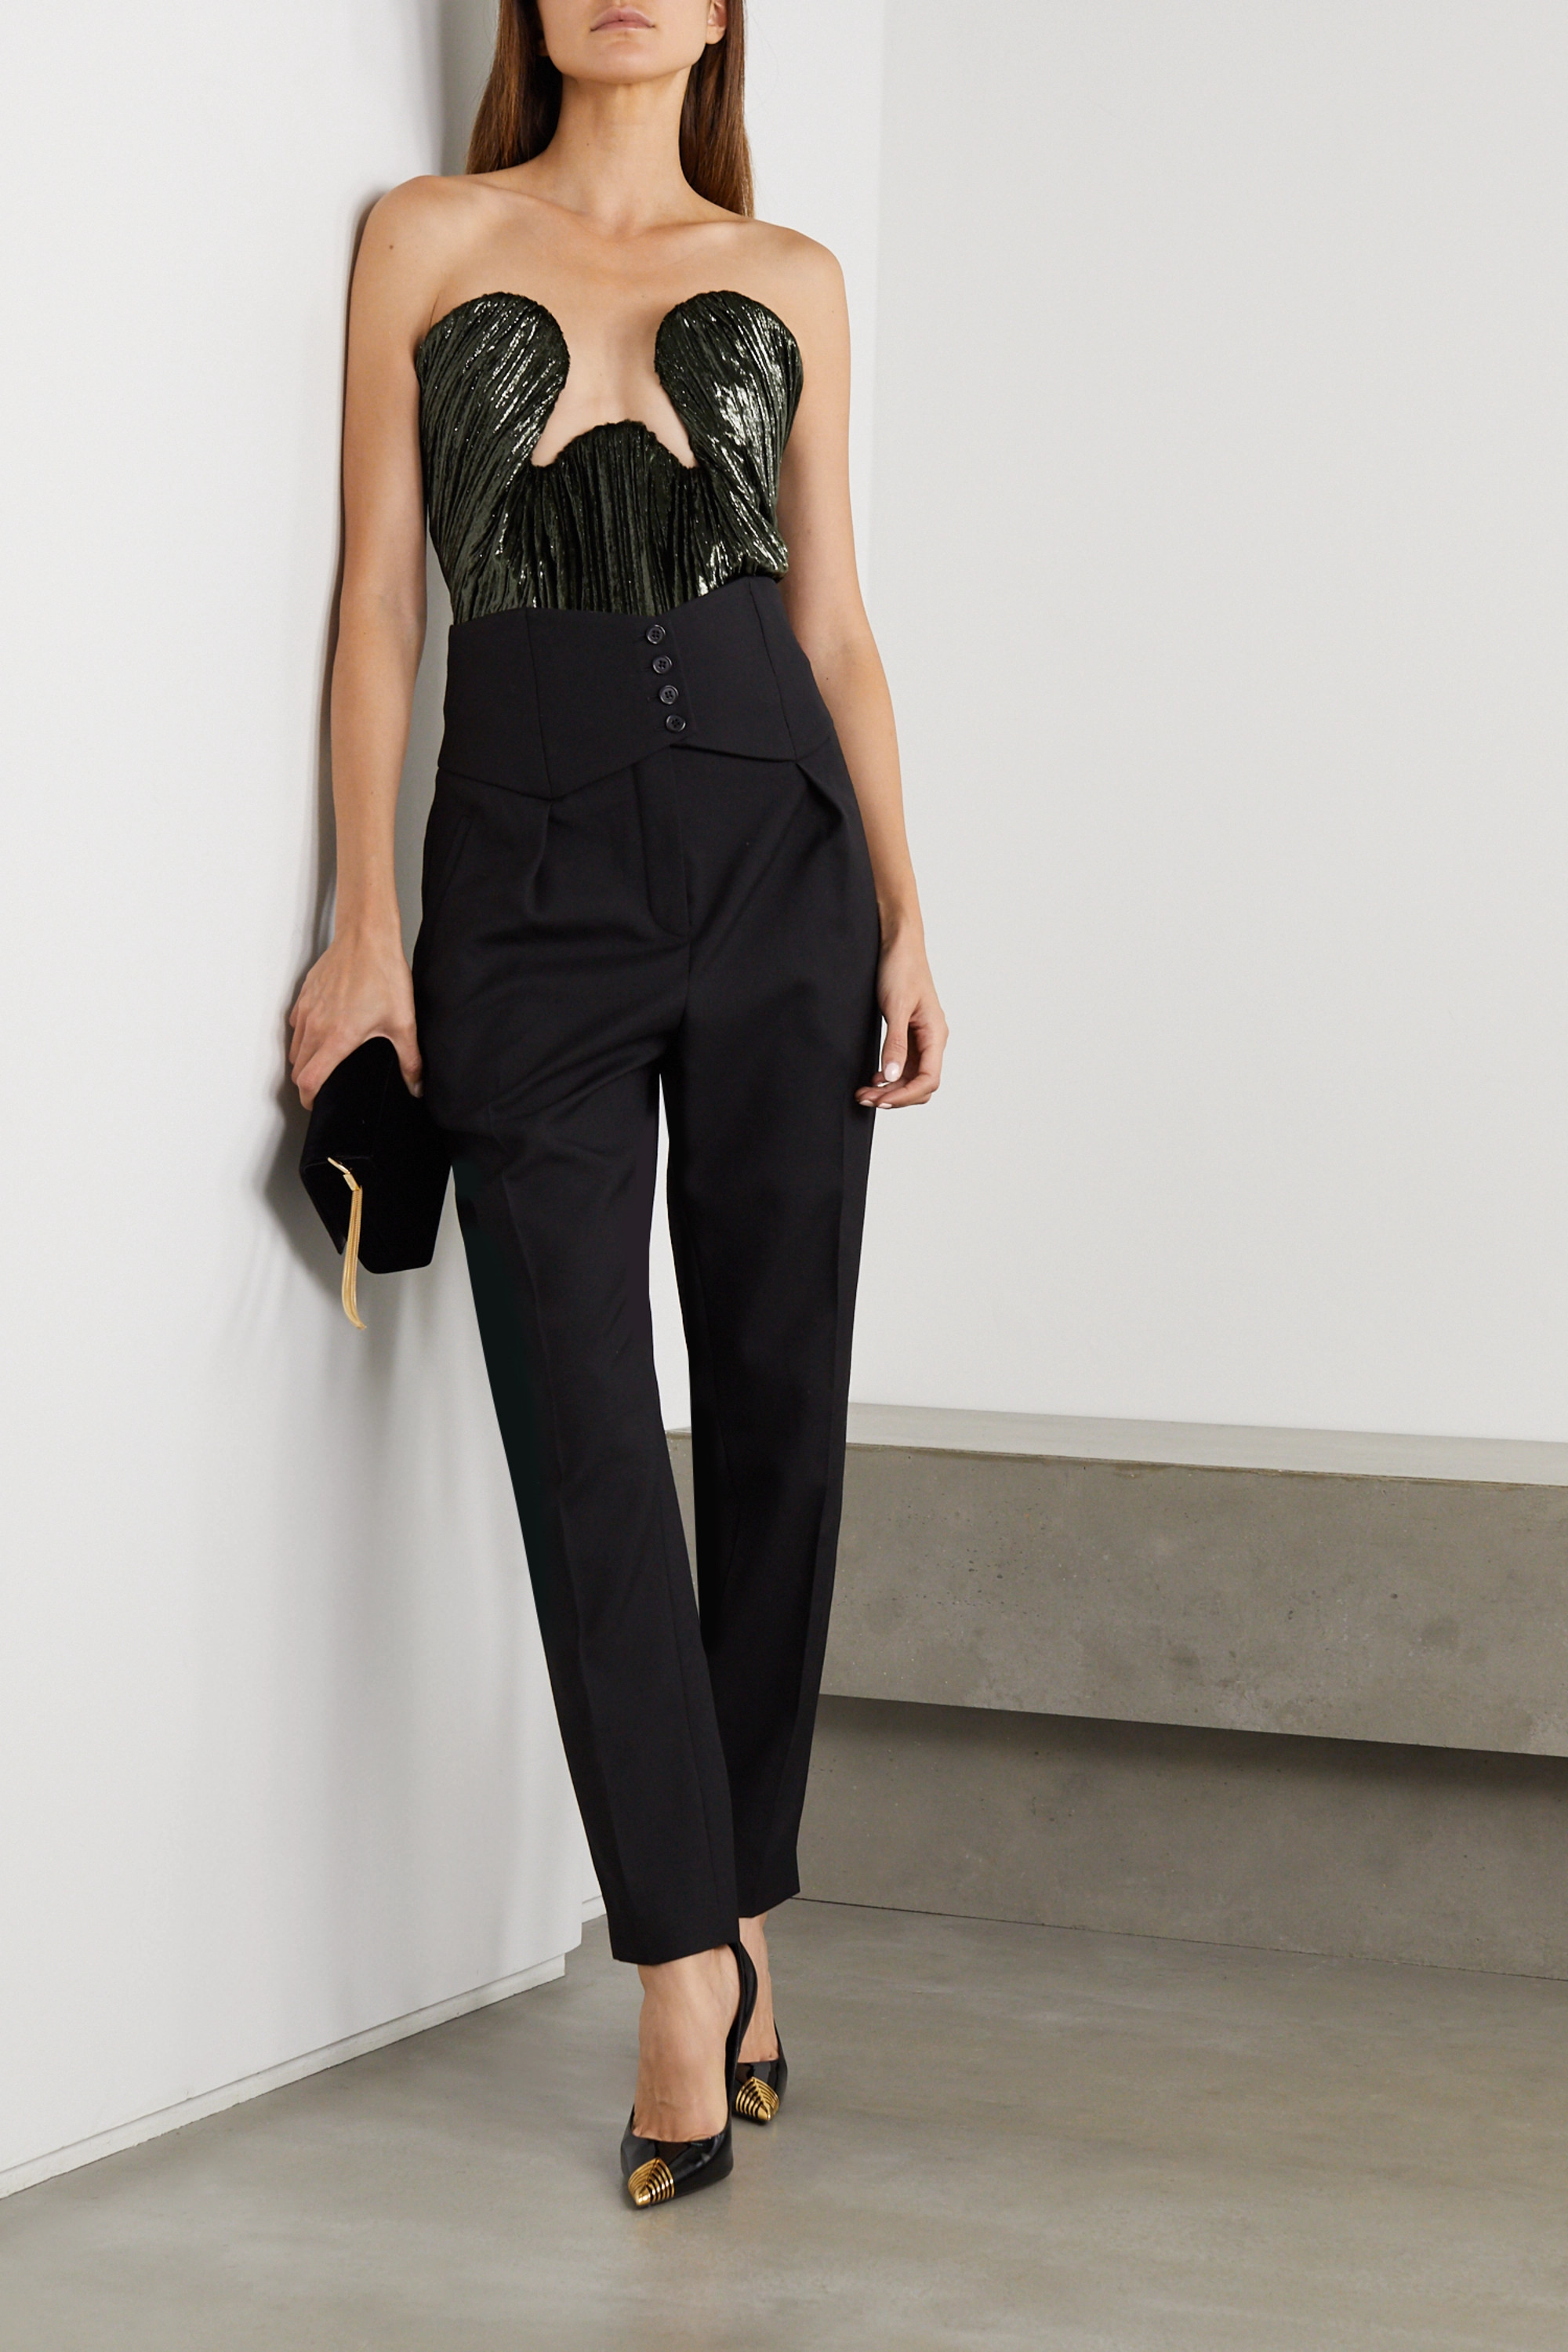 SAINT LAURENT Cutout crinkled metallic velvet and stretch-jersey bodysuit